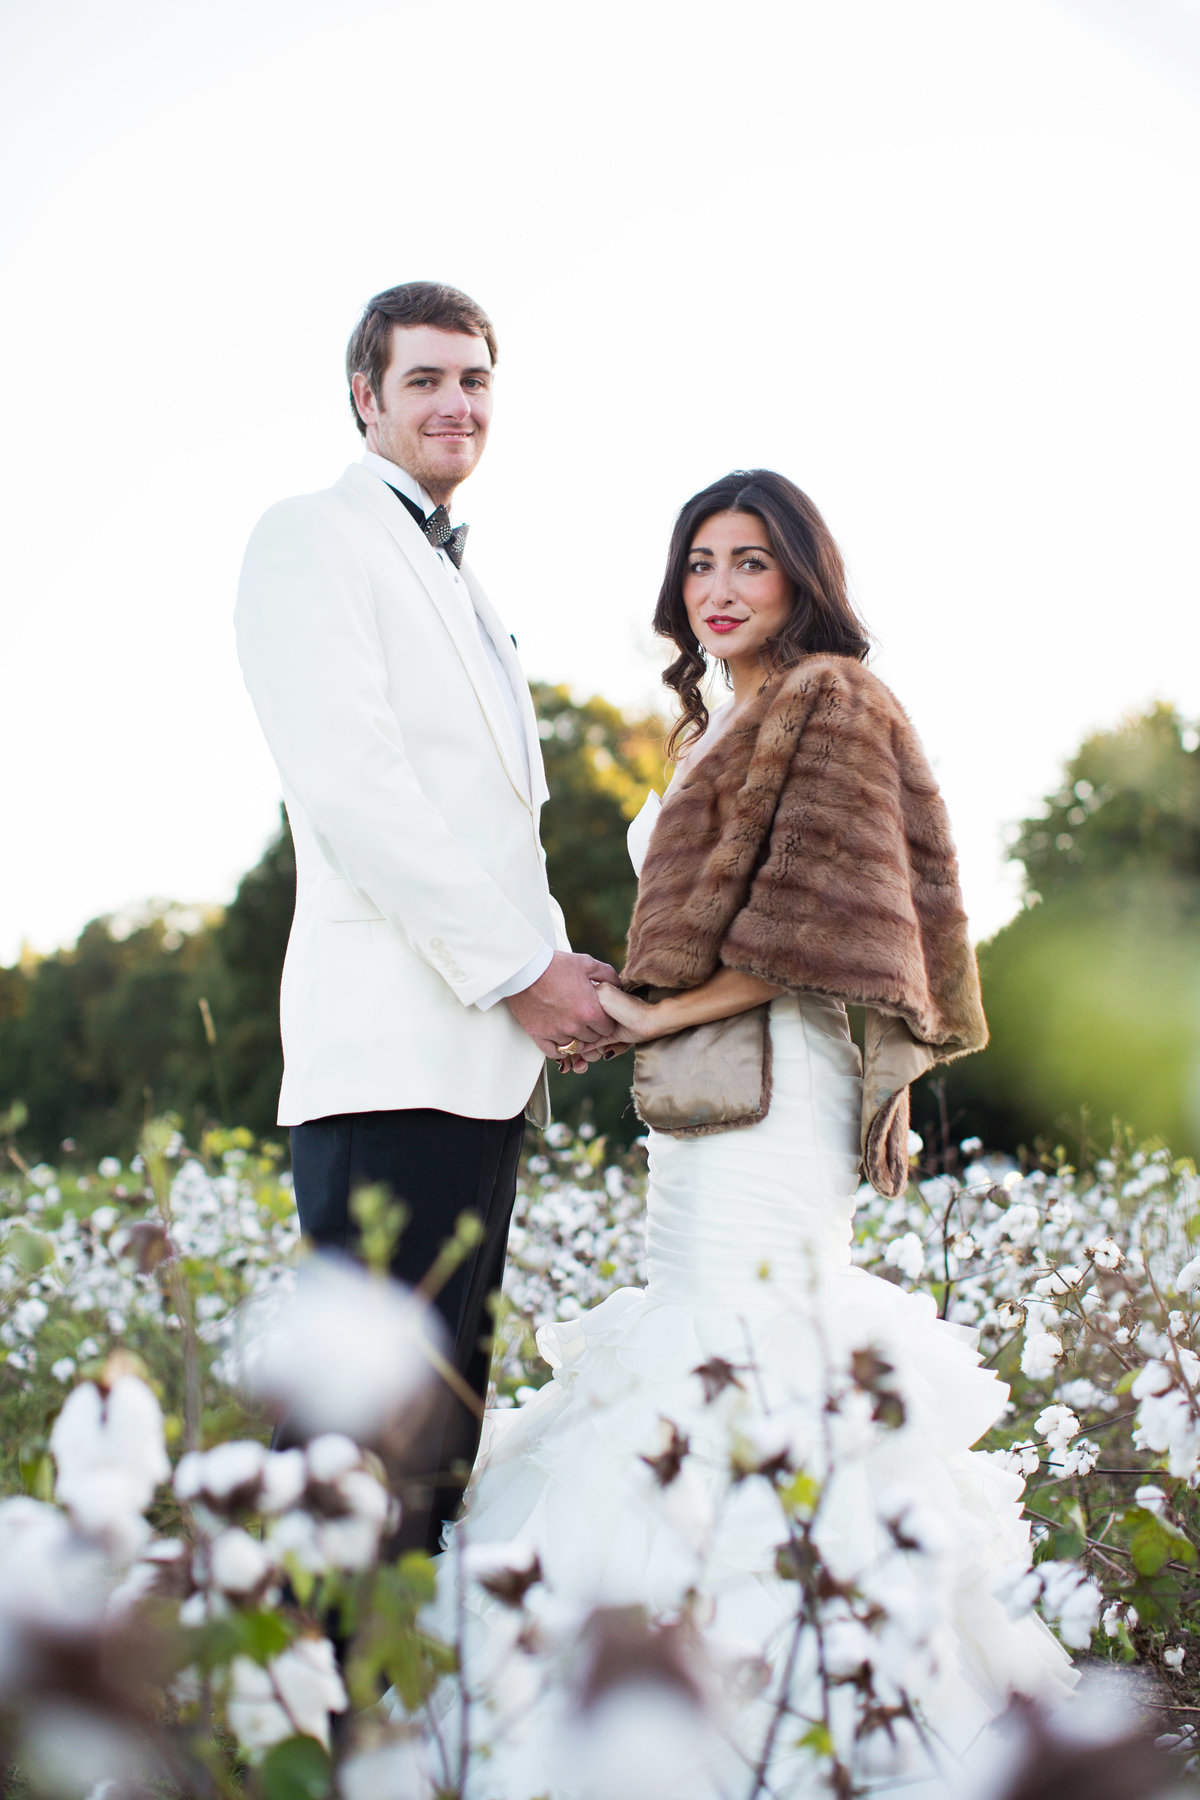 cotton_field_wedding_photography_alabama_birmingham_wedding_photographer_jadore_photographie-28